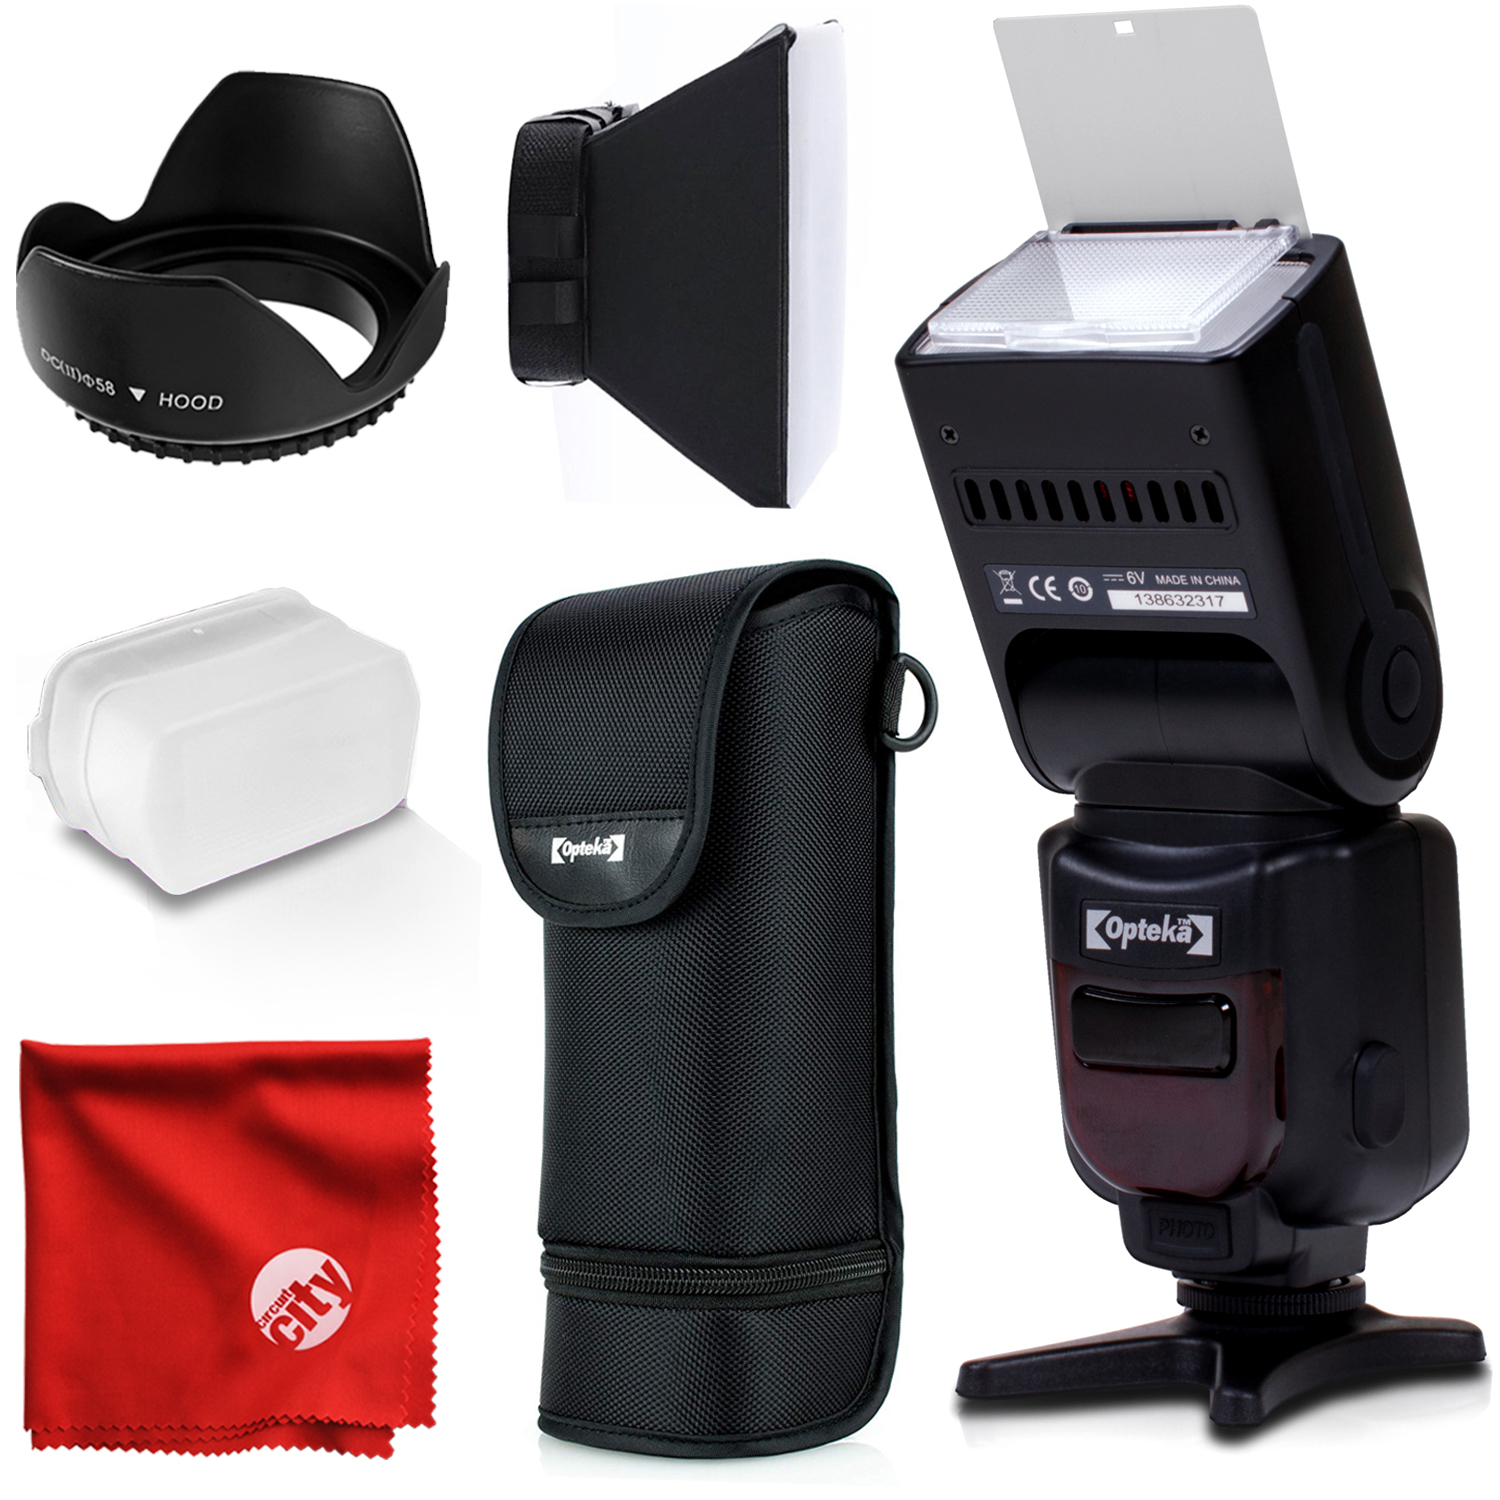 Includes Neutral, Green Opteka Tri-Color Hard Flash Diffuser for The Nikon SB-900 Flash Warming Gold Cooling